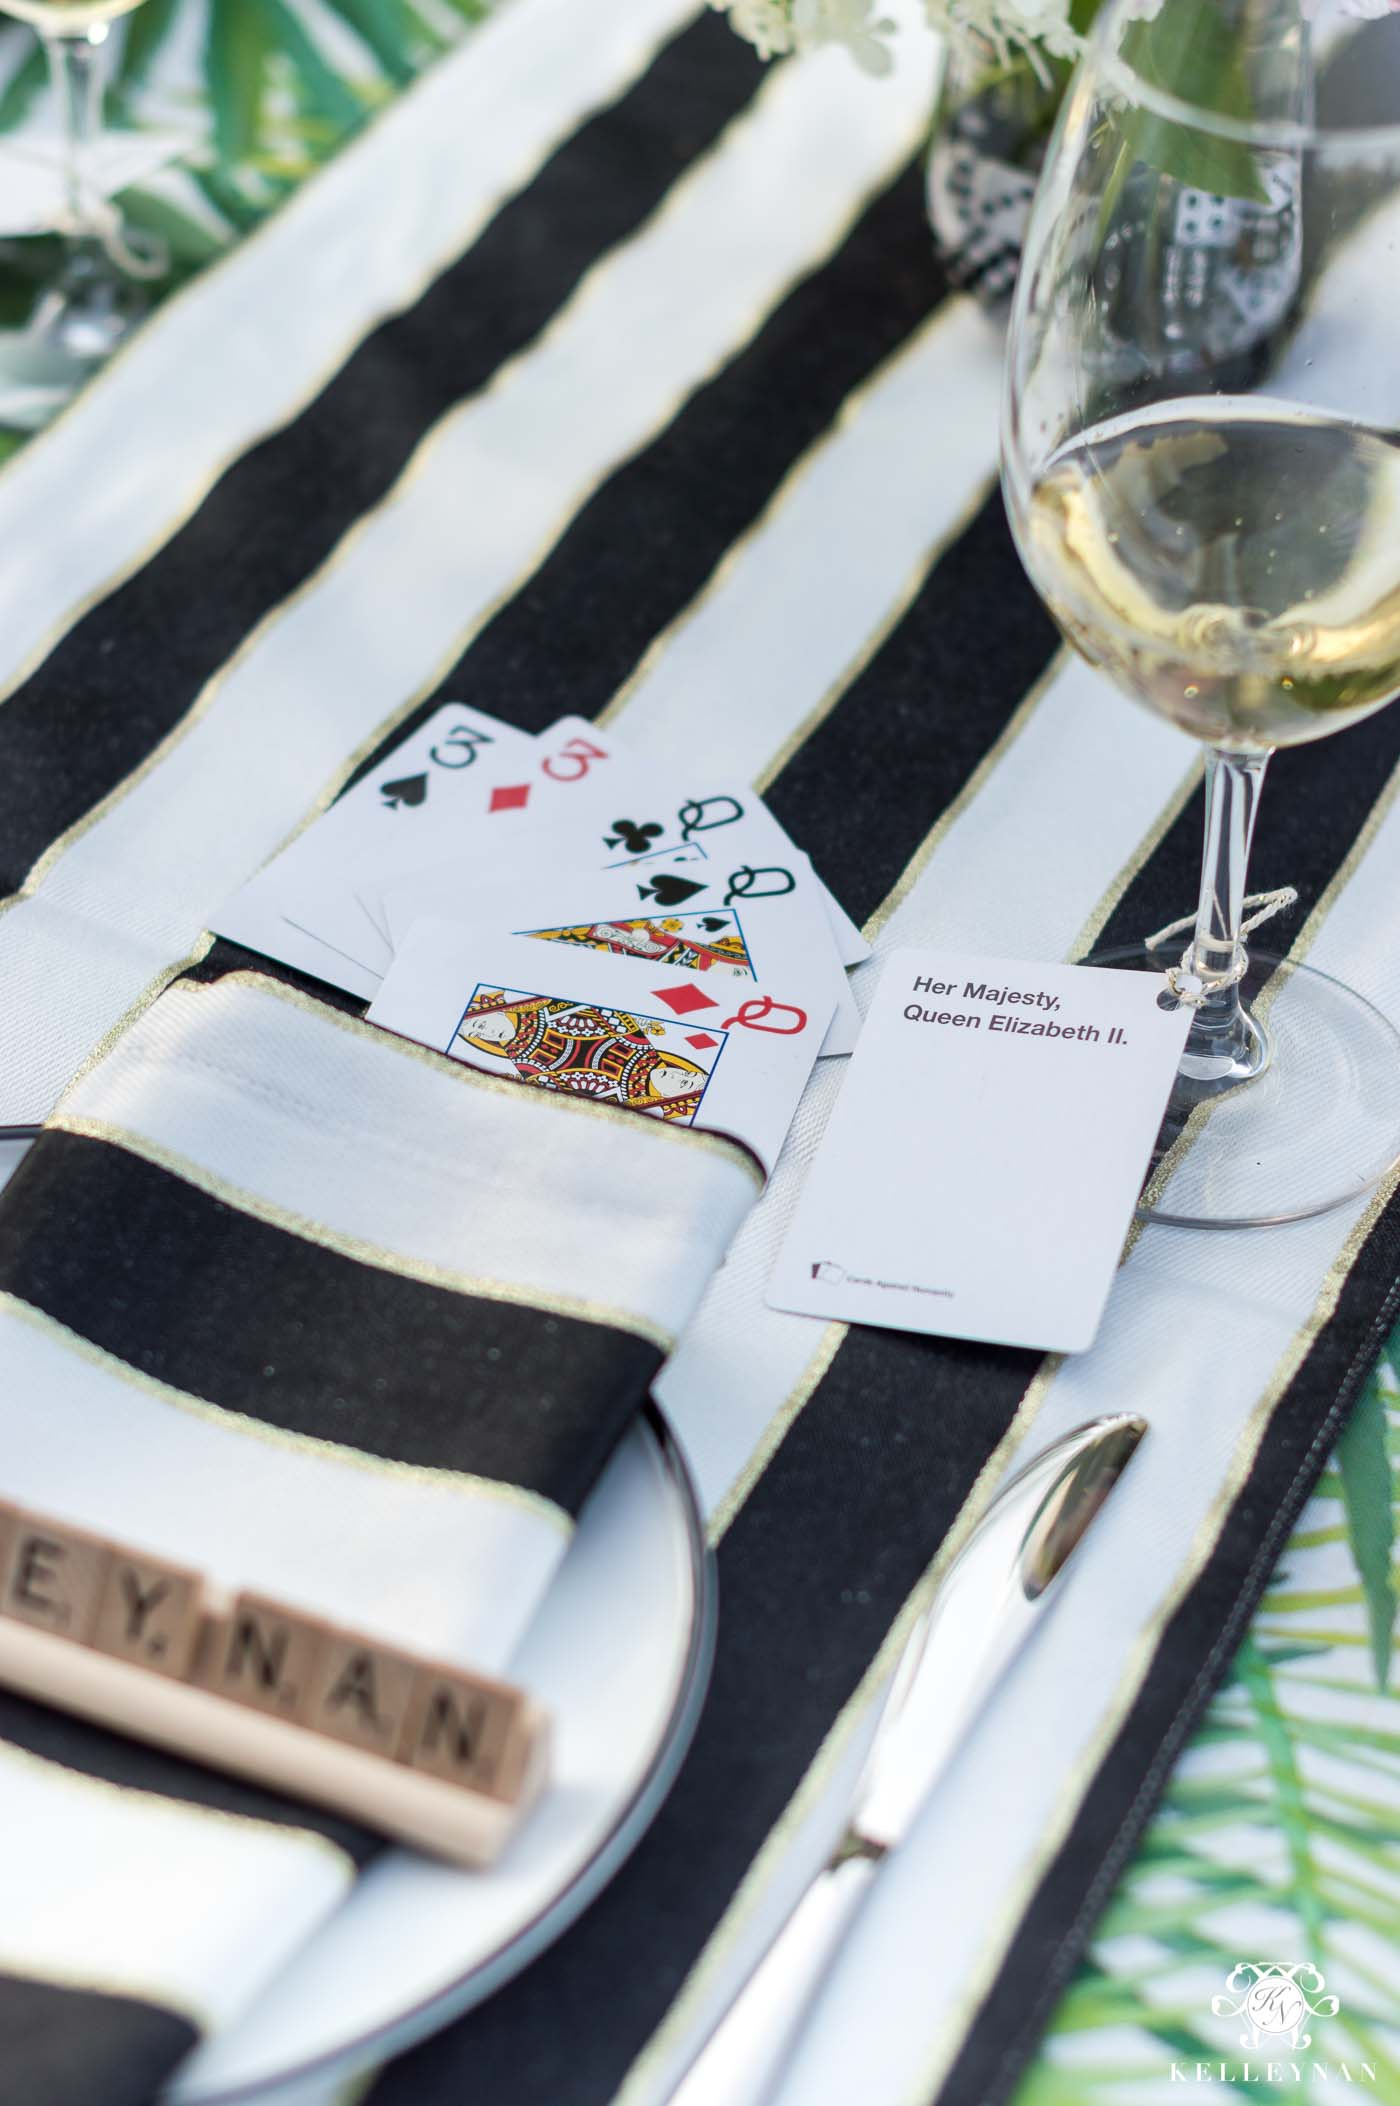 Game night wine charms using cards against humanity people cards